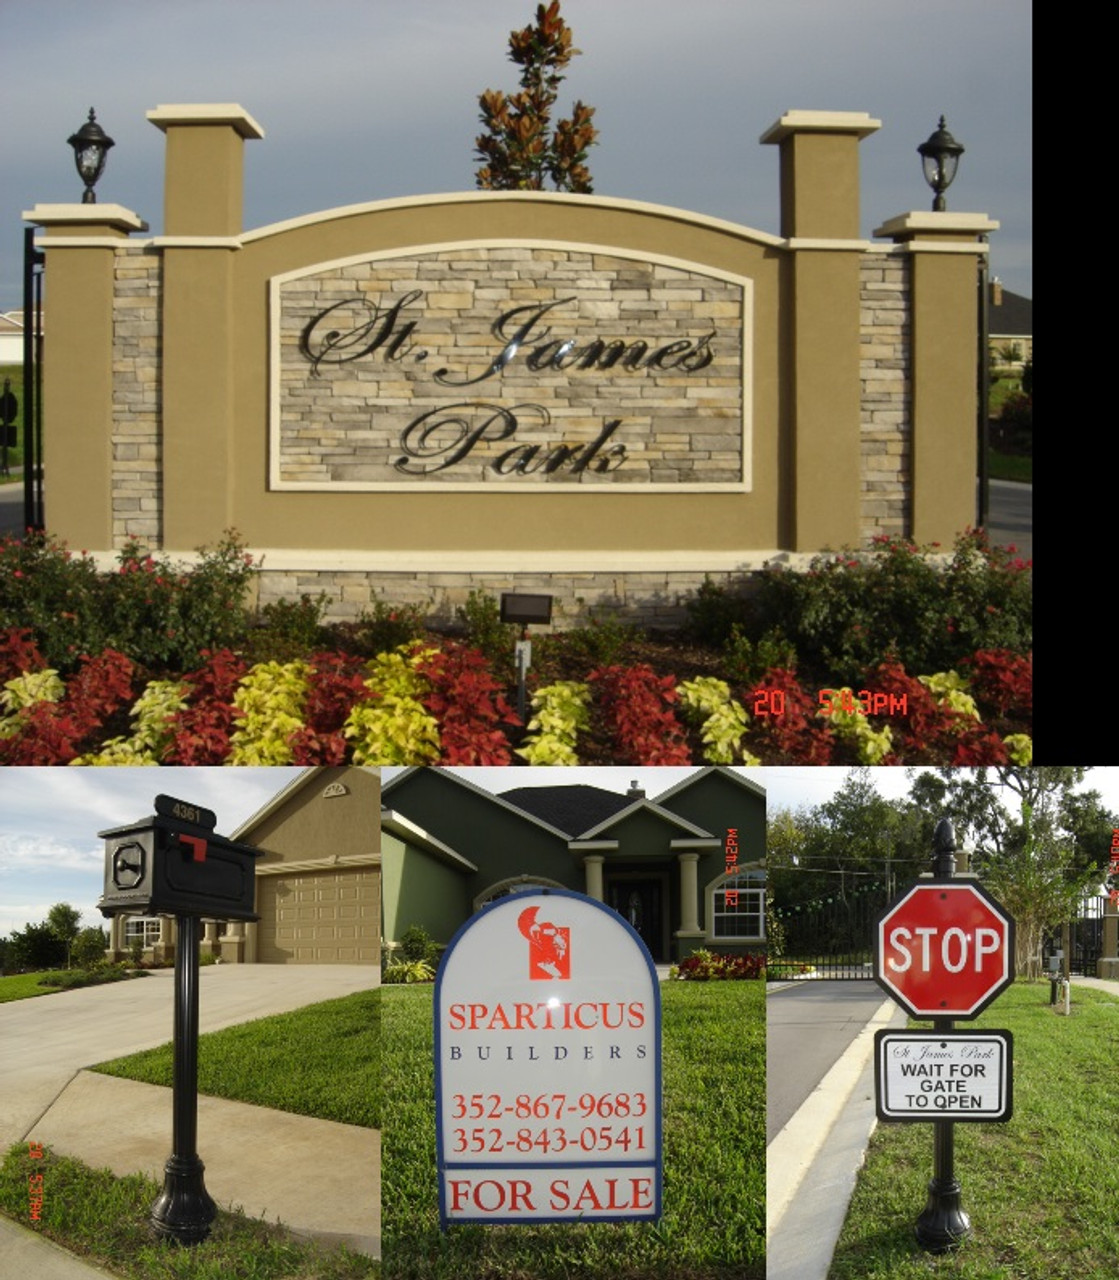 Mailbox style # MB-3 with Address Plaque, installed with Fluted Round Pole and Small American Base.  Real Estate Frame in Round Top style with  digitally printed ARC shaped aluminum sign blank. Fluted Round Pole topped with Acorn Finial and completed with Small Americana. To request a quote, please include dimensions specific to your project. Base. Stop Sign & Backer, Please Wait Sign & Backer.